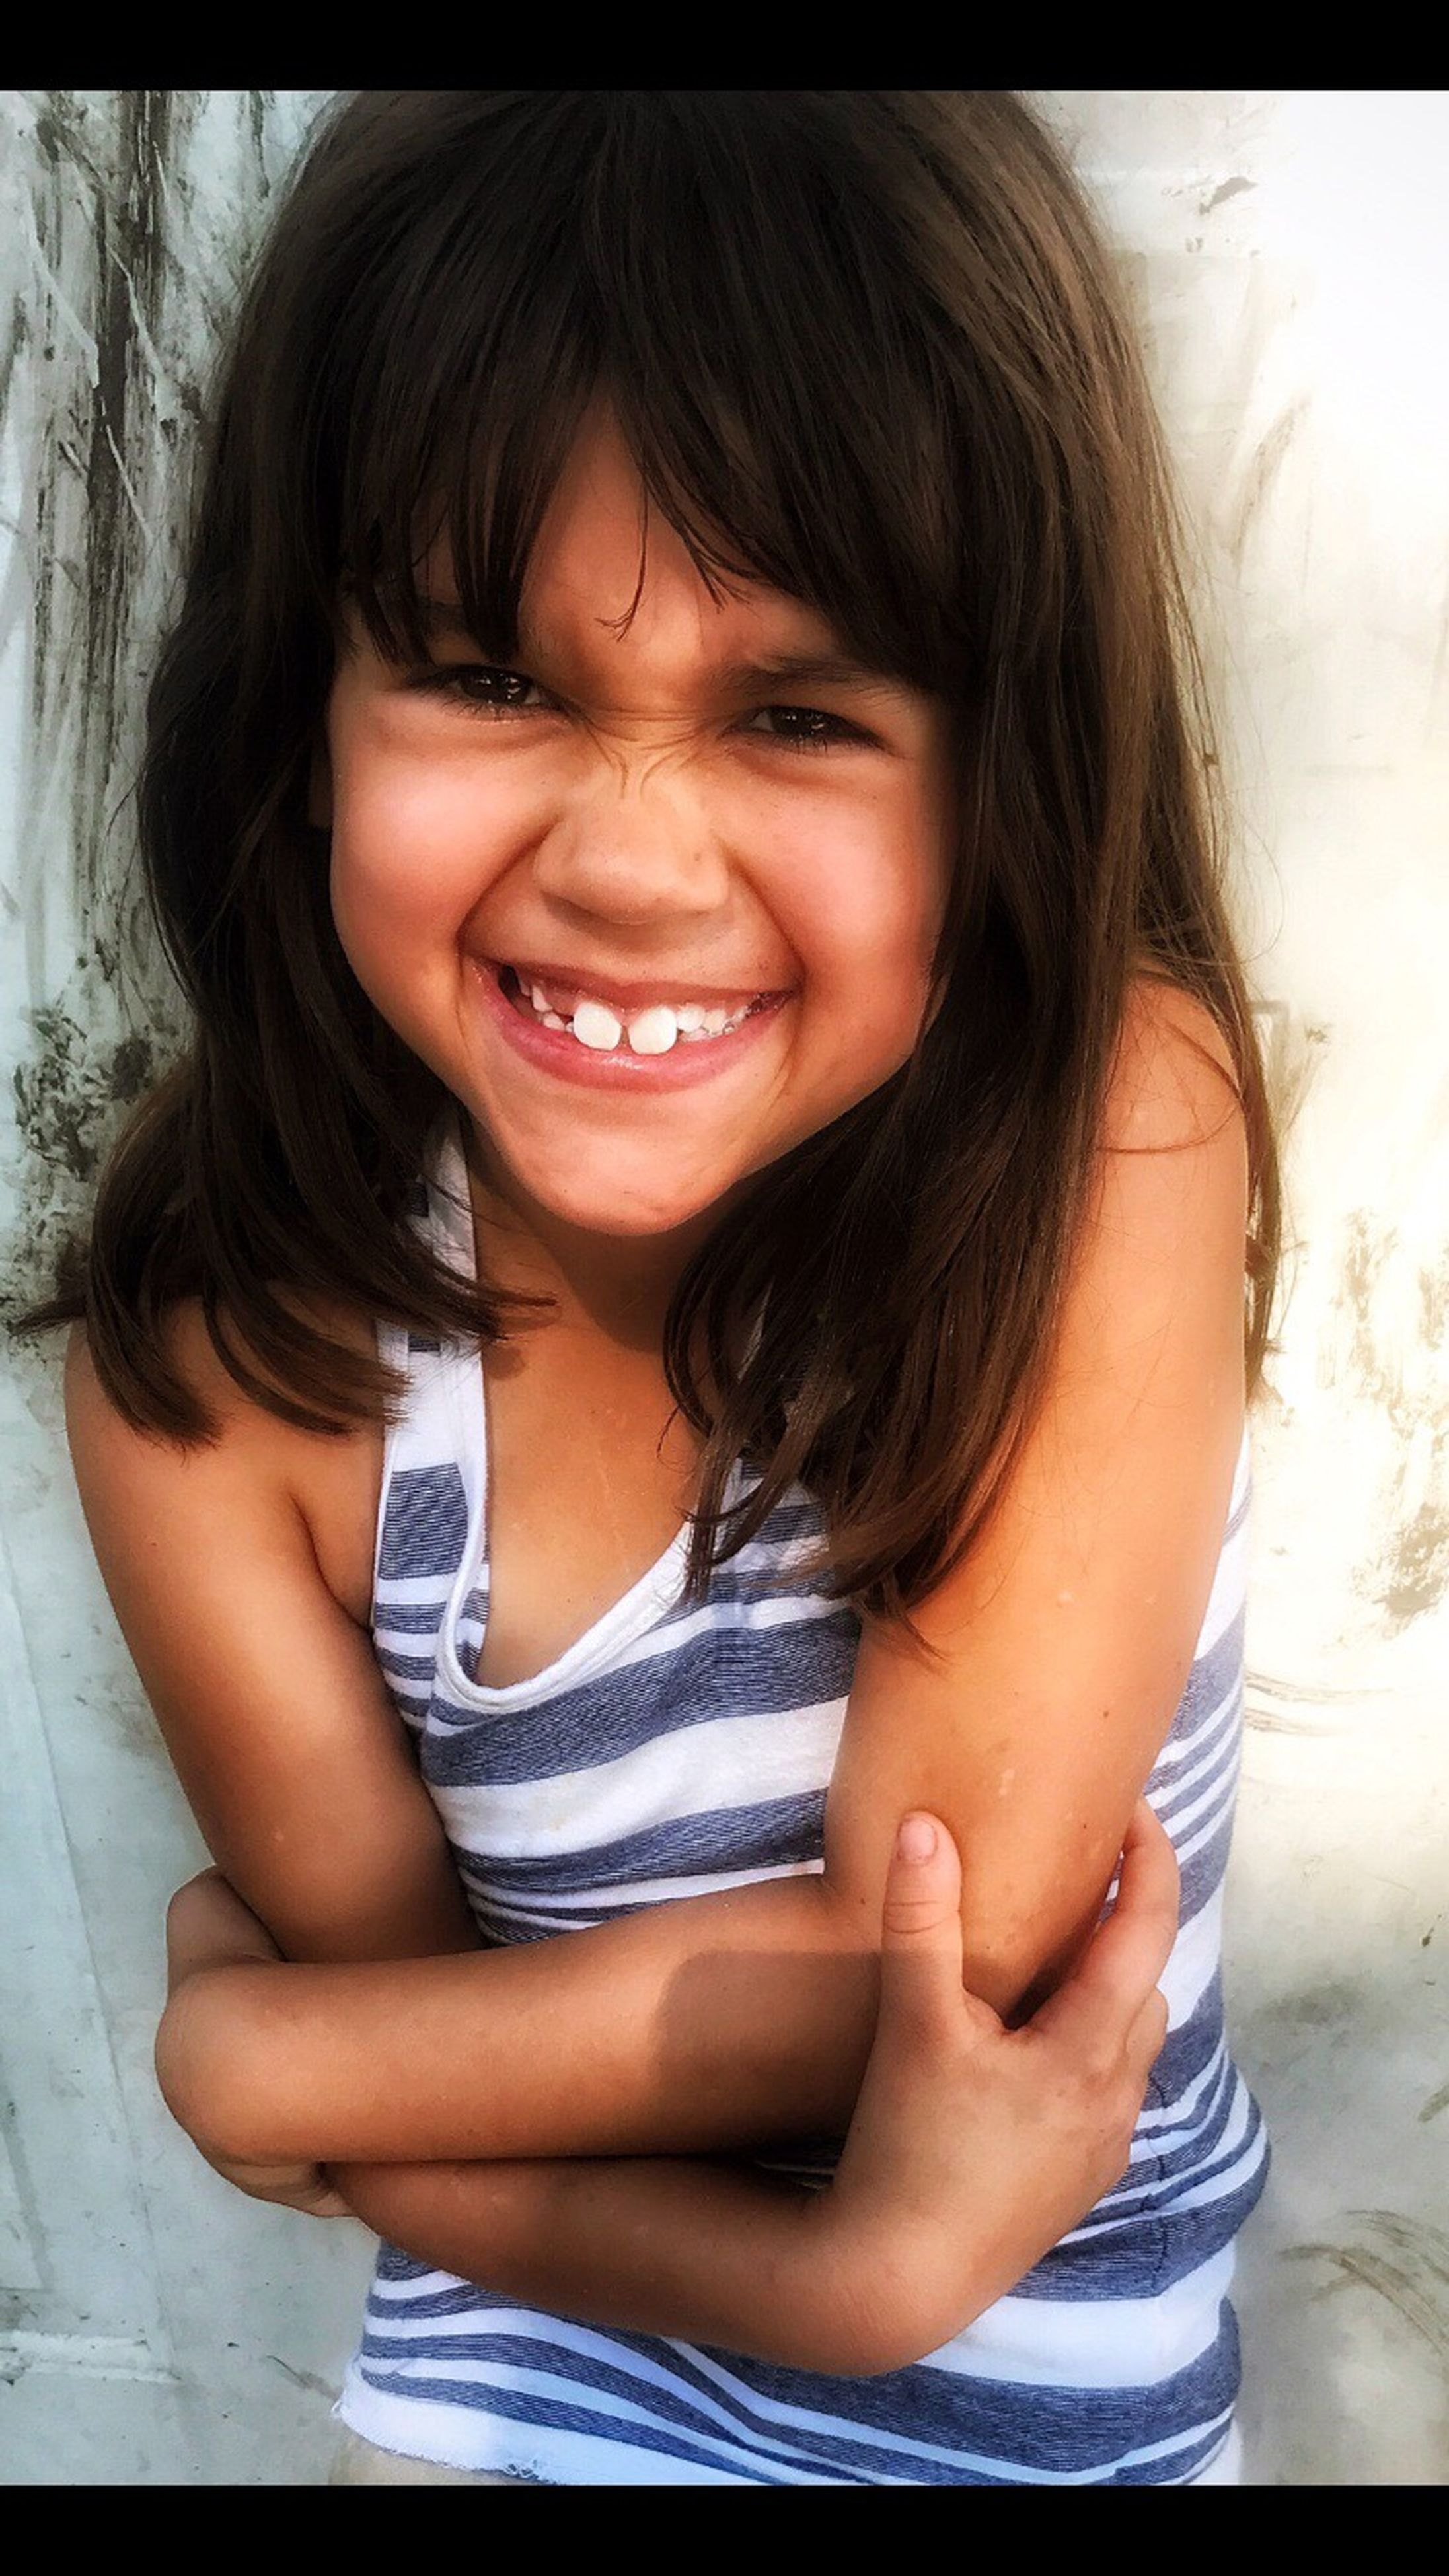 smiling, childhood, looking at camera, happiness, real people, portrait, elementary age, front view, one person, girls, lifestyles, day, close-up, outdoors